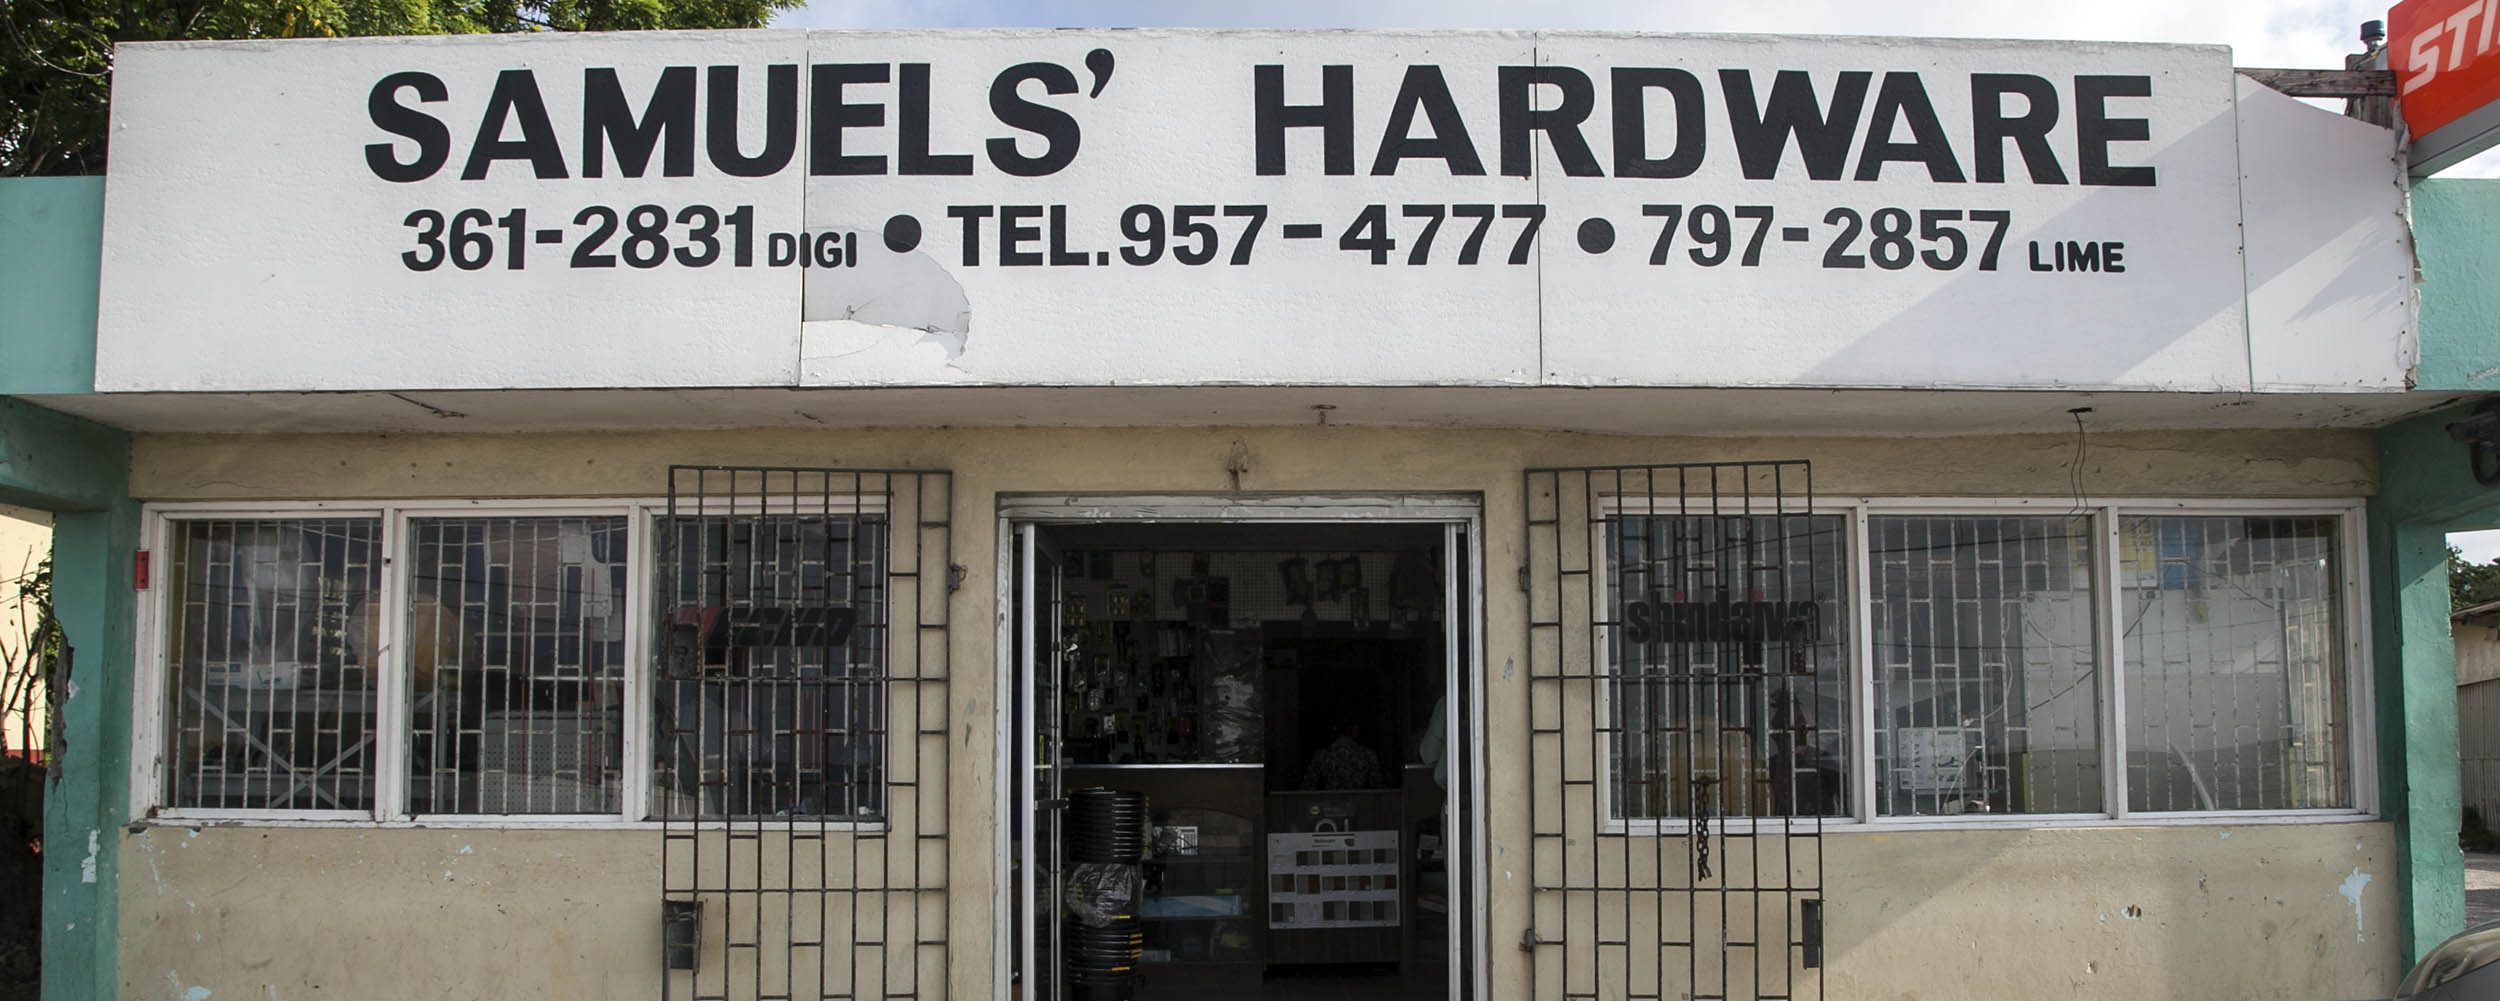 Samuel's Hardware - West End Road - Negril Jamaica